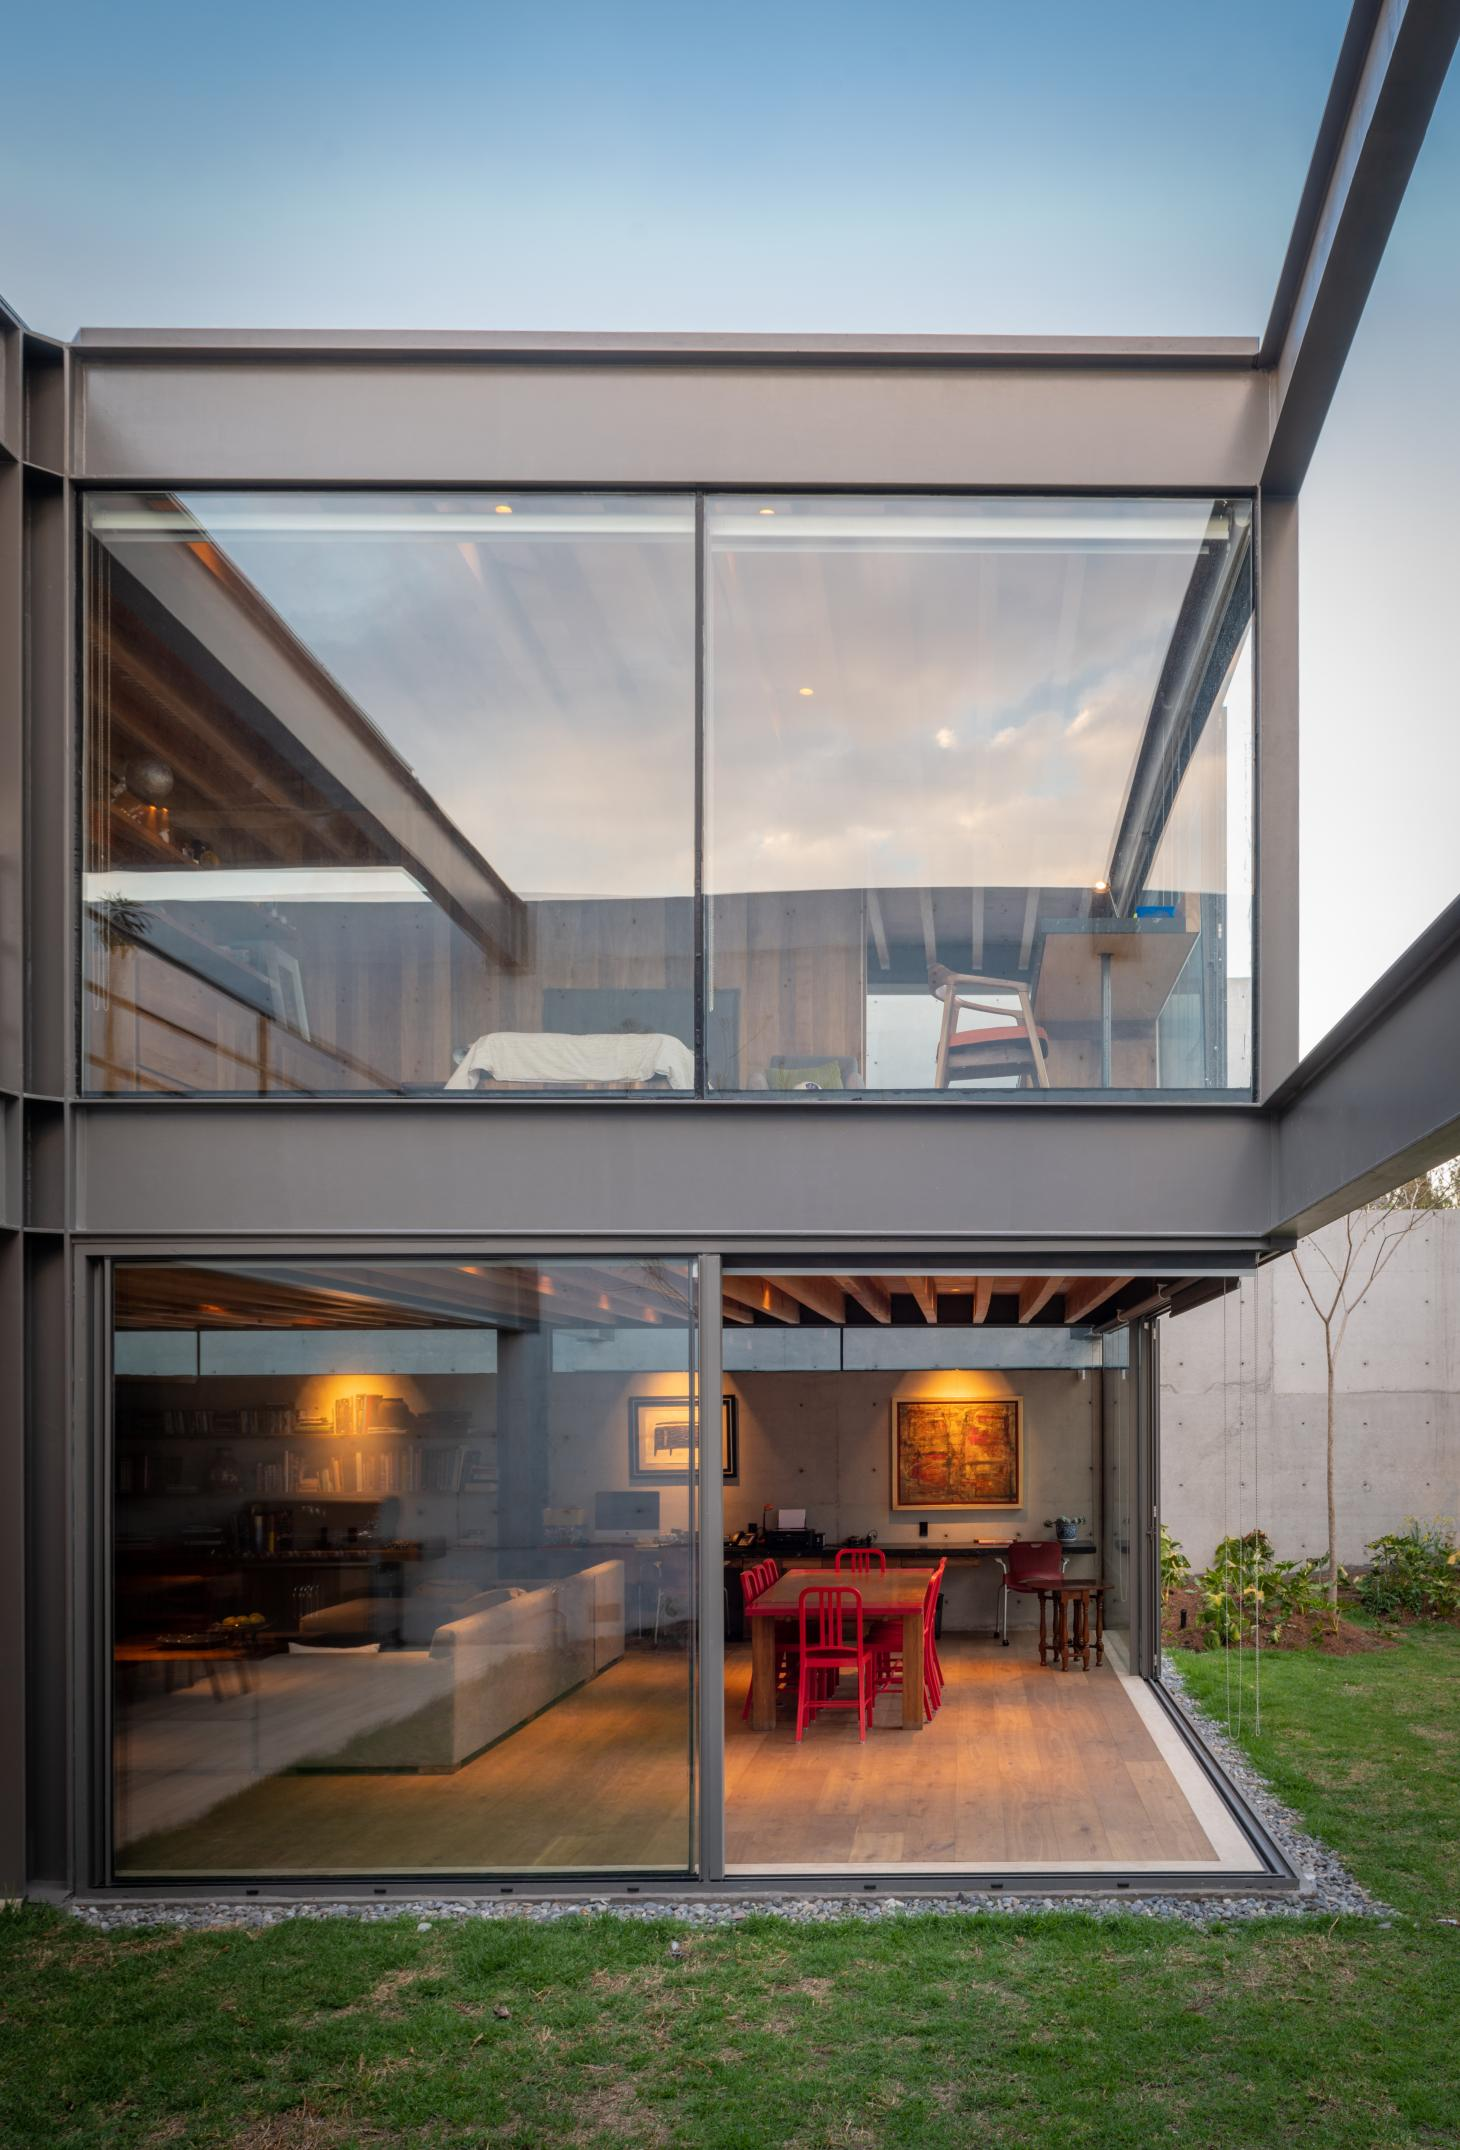 Casa Vertientes in Mexico City is a weightless balance of steel beams